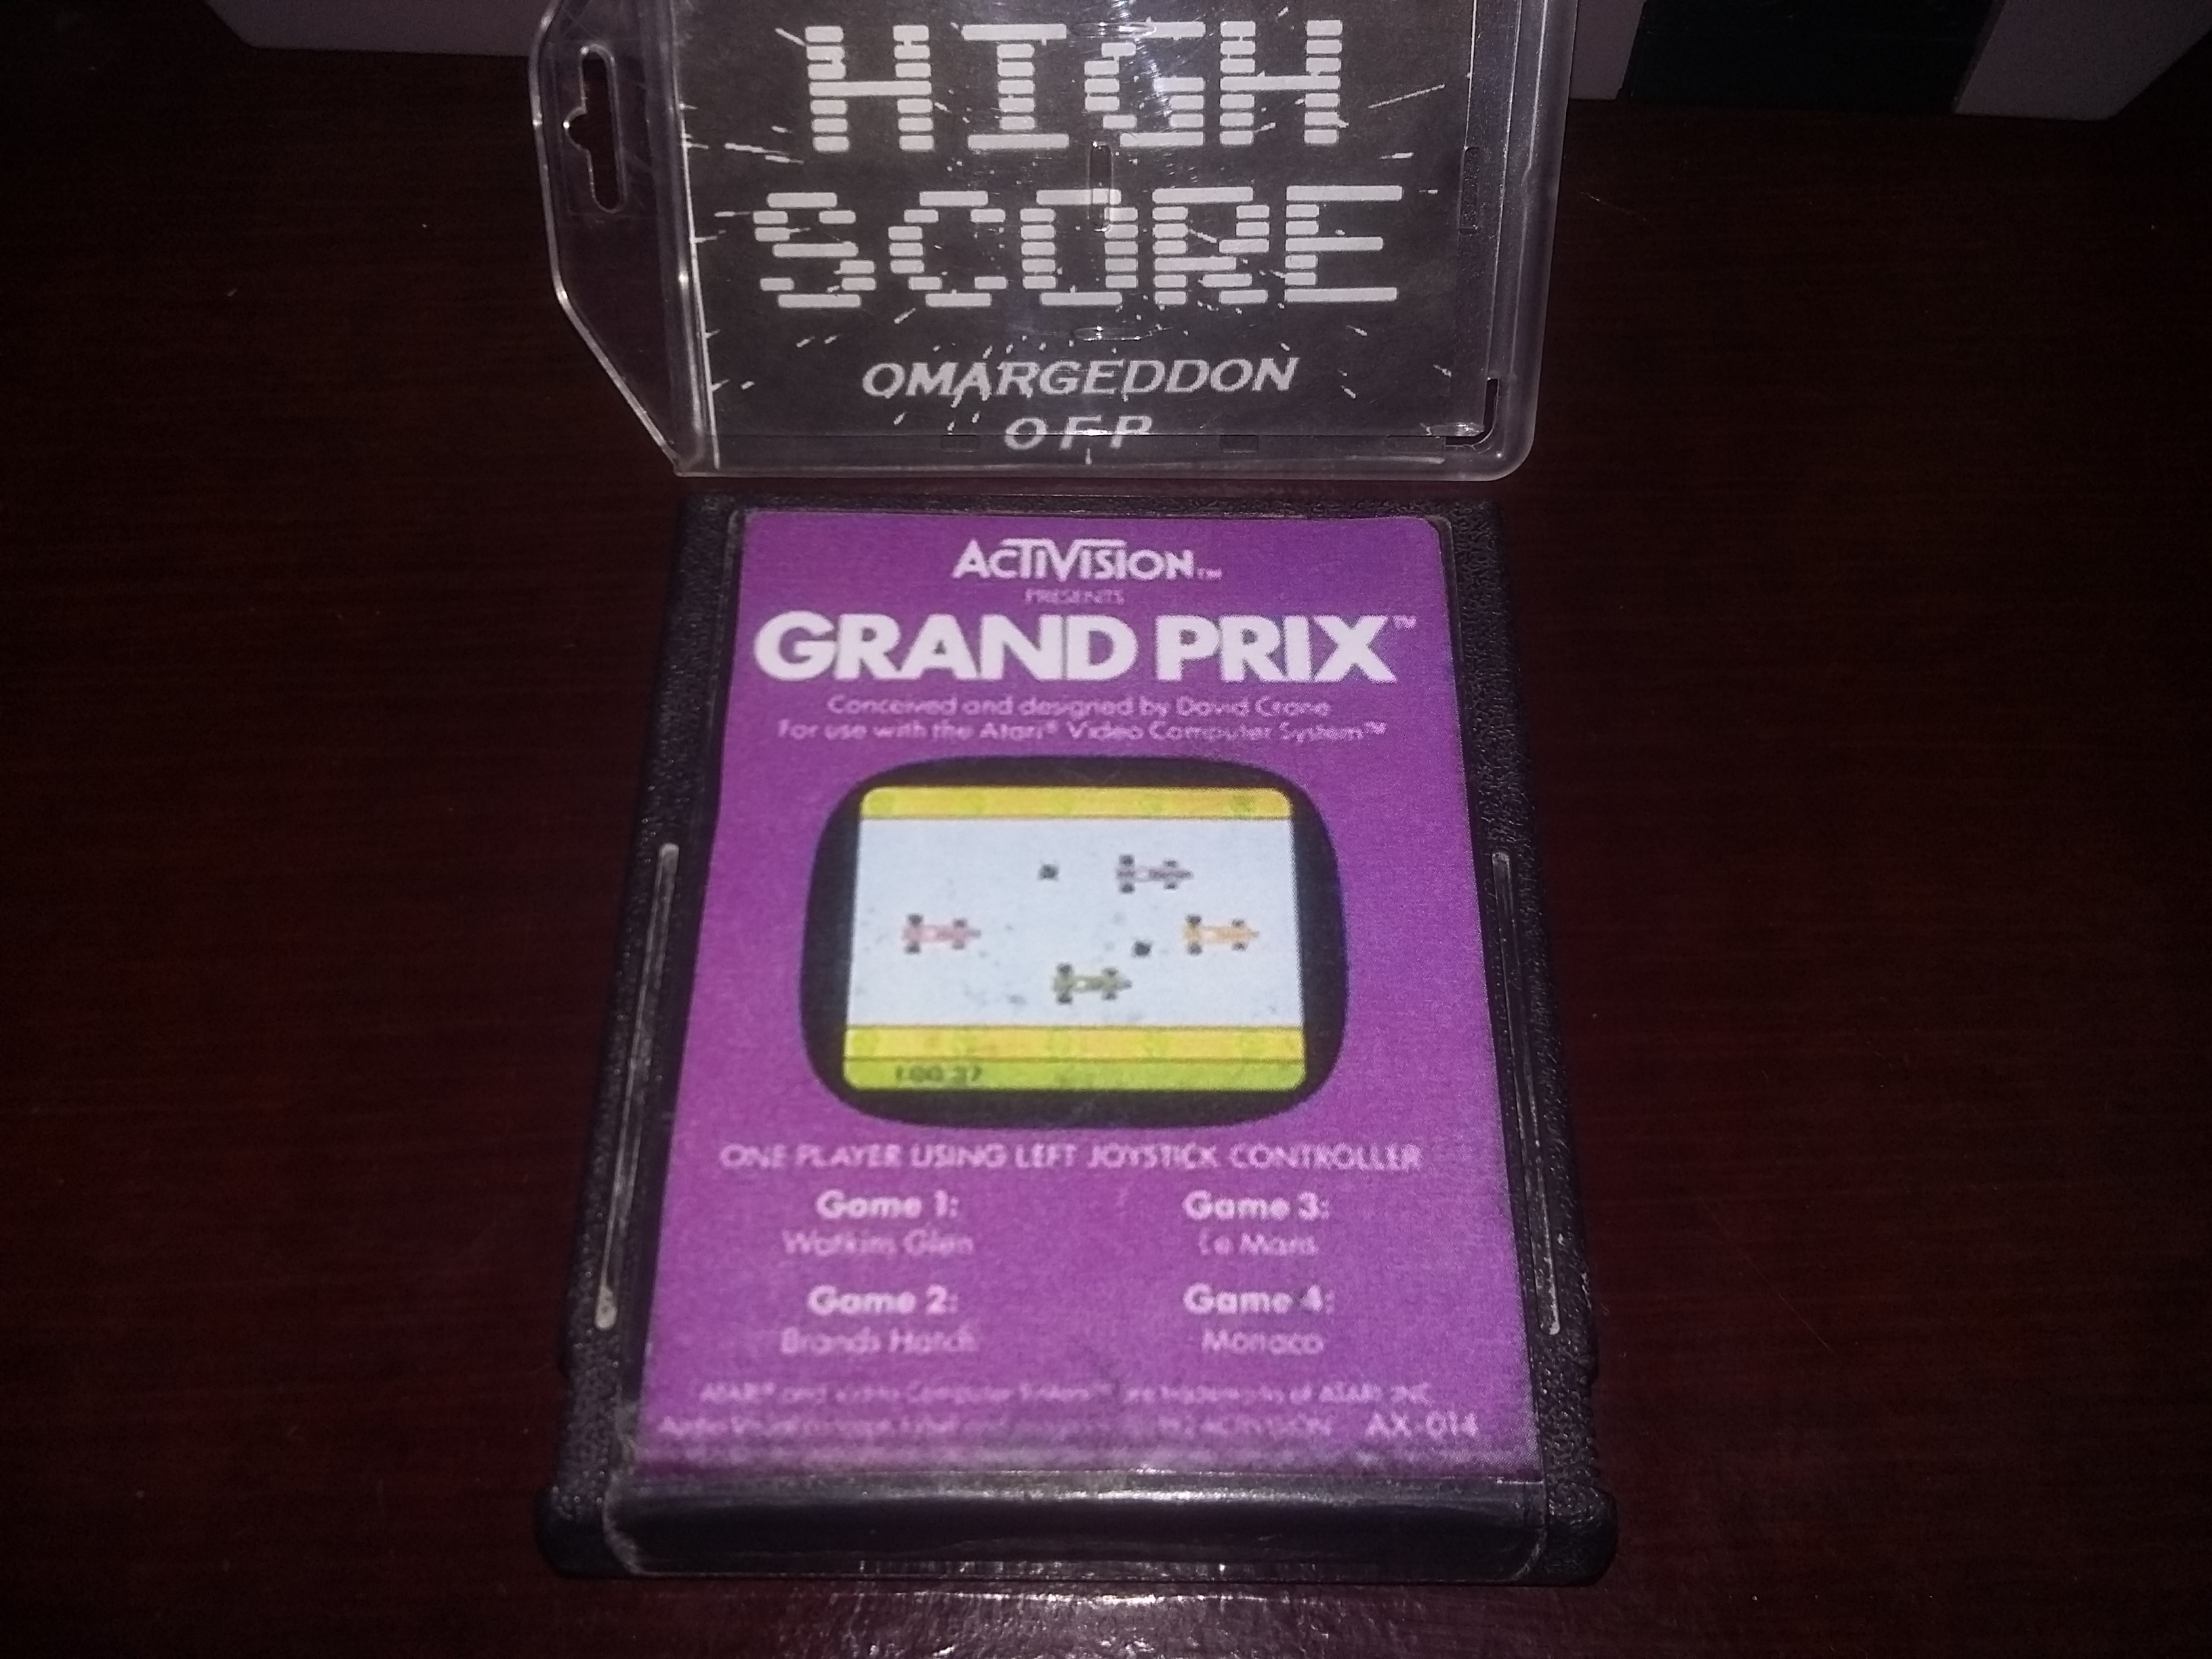 Grand Prix: Game 3 time of 0:01:55.16